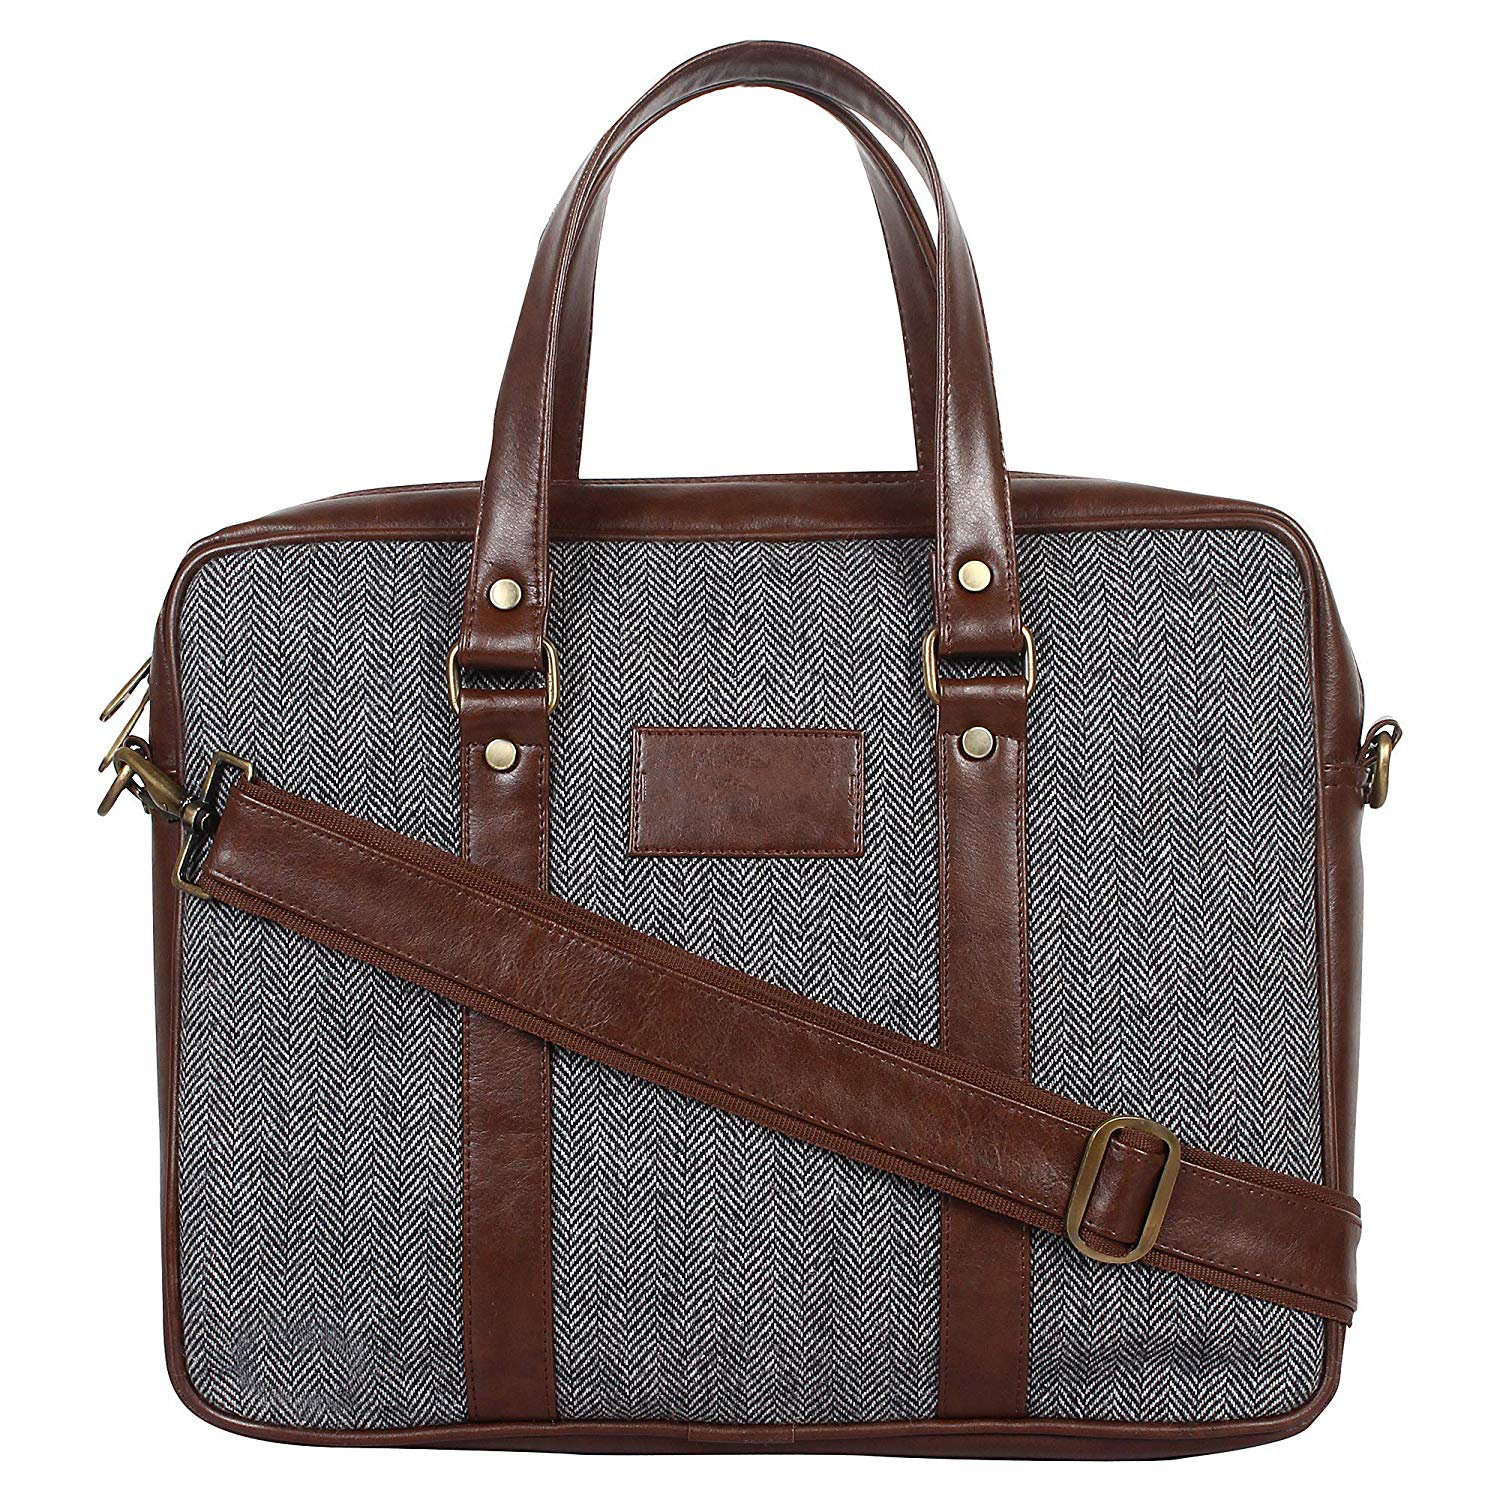 Home Story Tweed and Vegan Premium Leatherette Laptop Messenger Bag for 15.6 inch Laptops Brown Colour